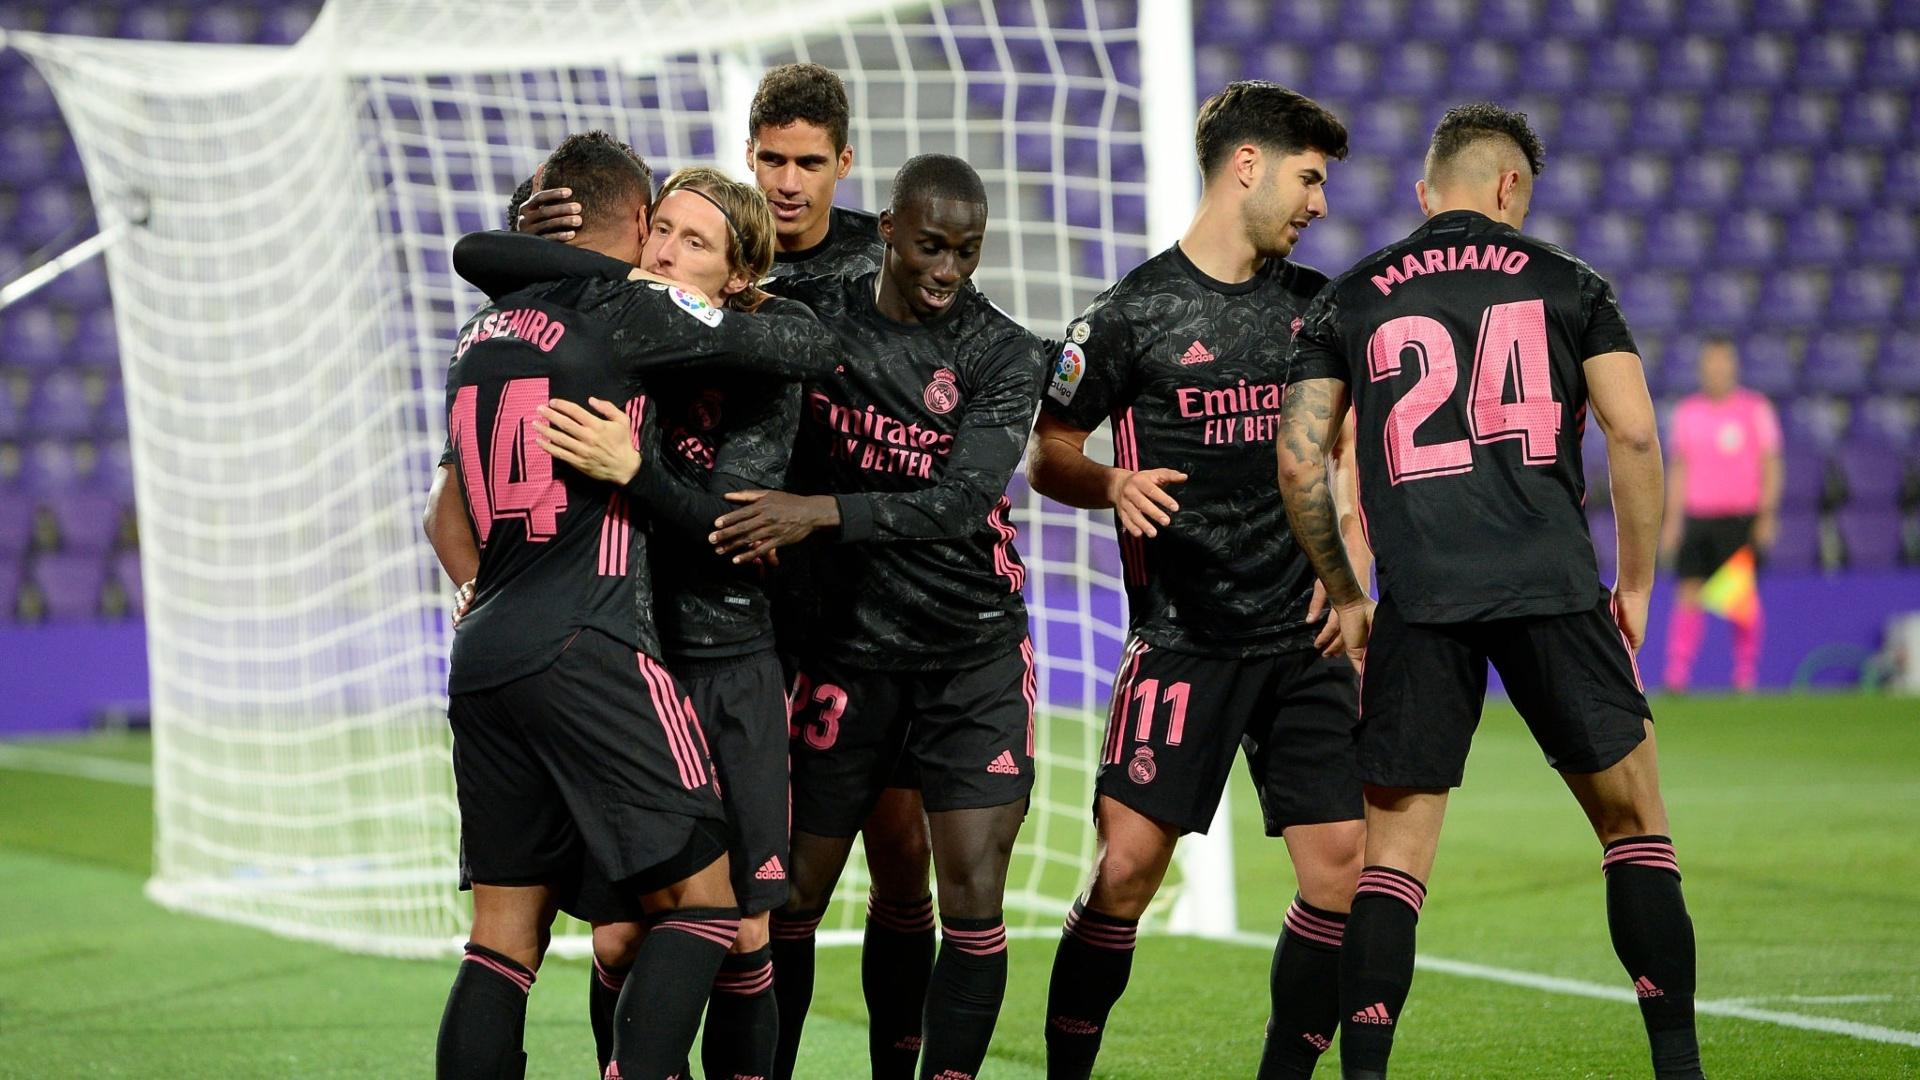 Match Report: Real Valladolid 0-1 Real Madrid